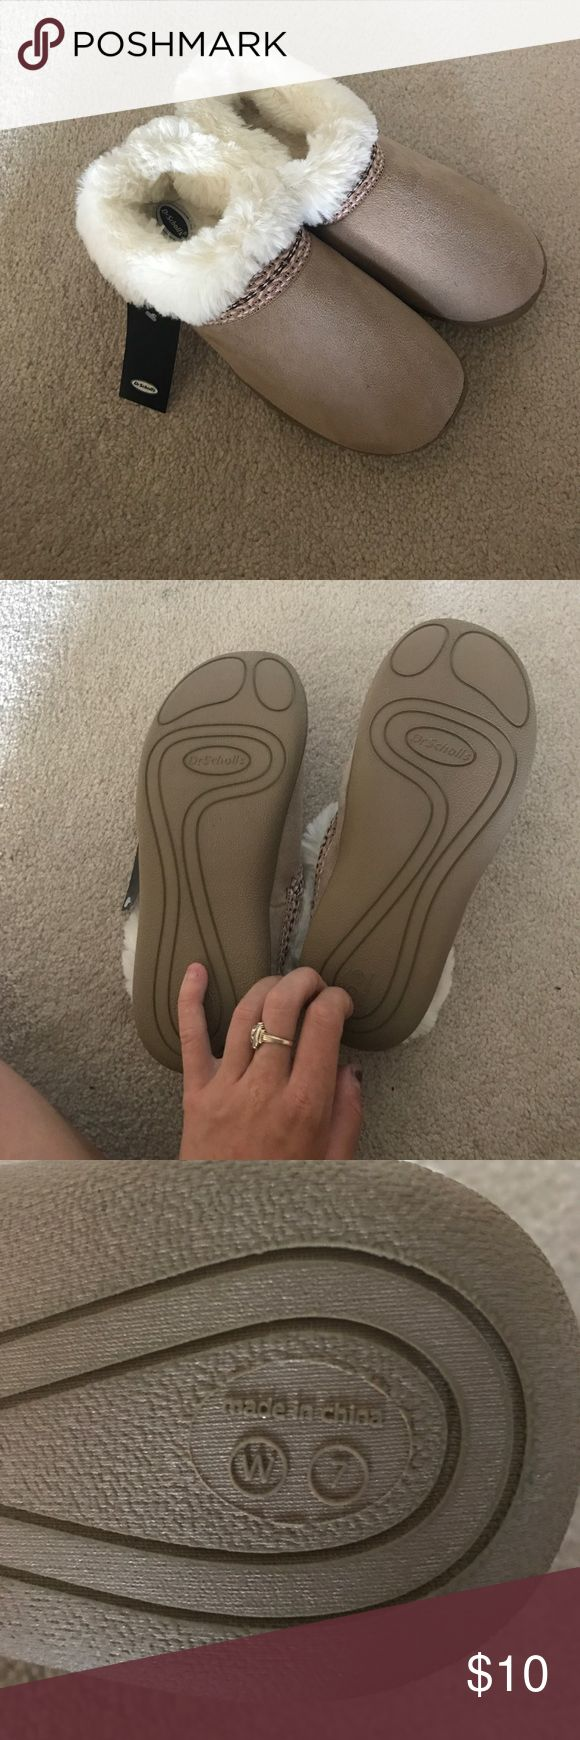 NWOT Dr. Scholls Moccasins Brand new! Super soft and comfy slippers for lounging around or your winter trips to the grocery store. Dr. Scholl's Shoes Moccasins